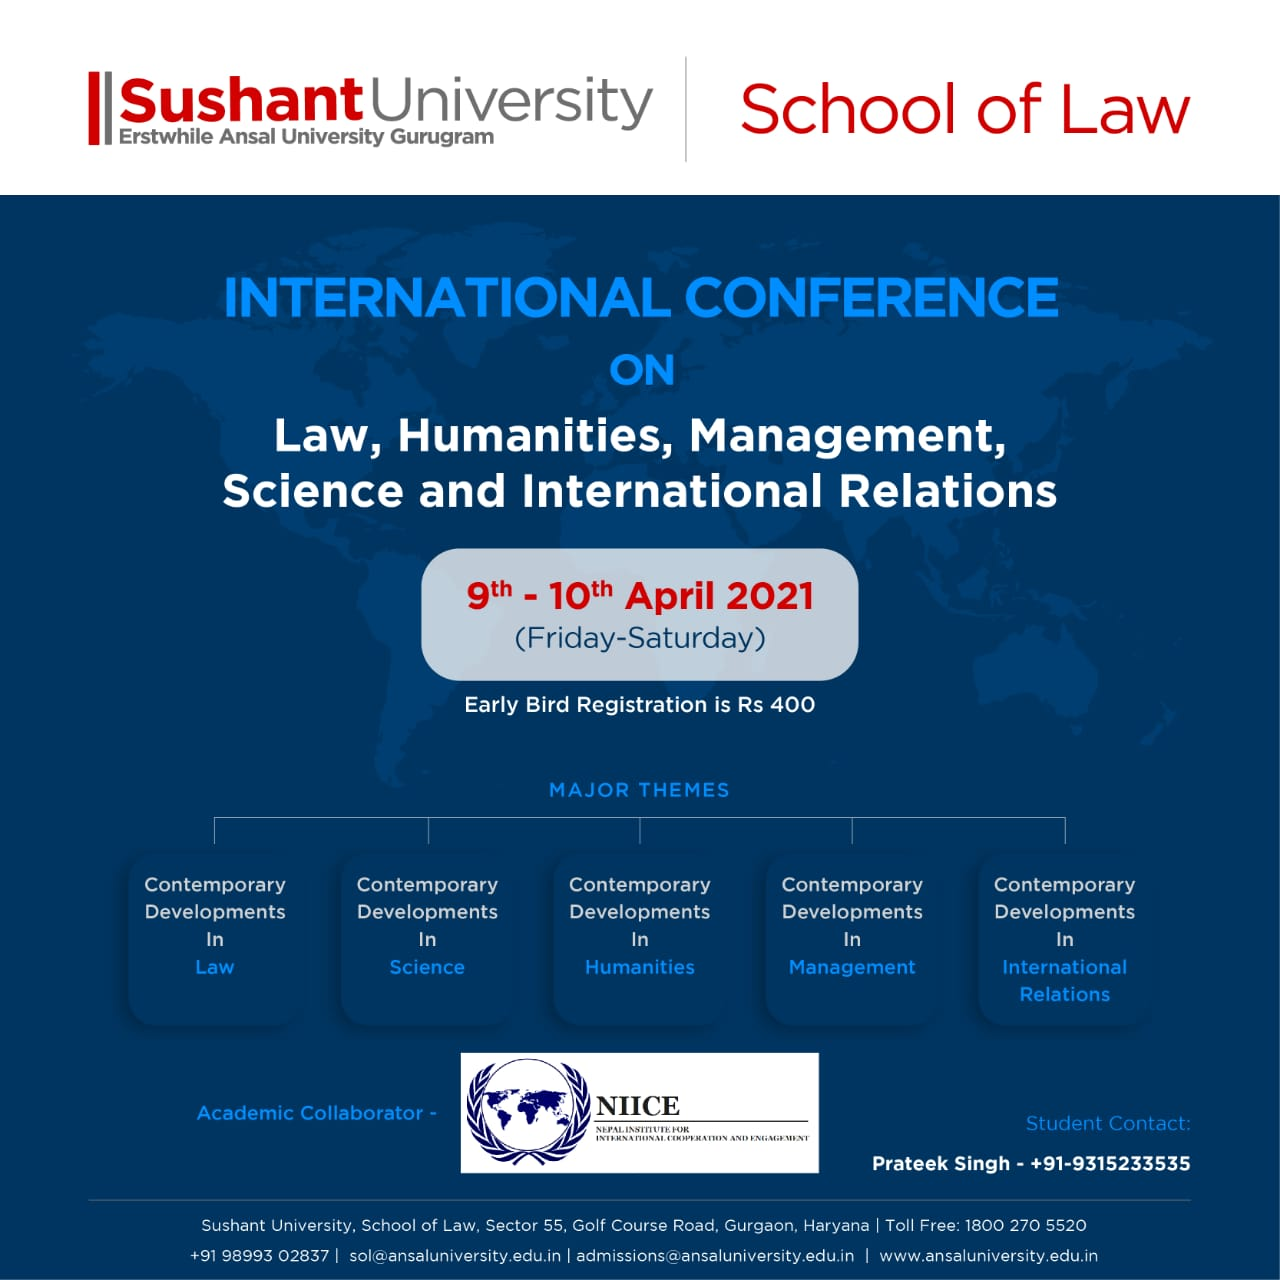 International Conference on Law, Humanities, Management, Science and International Relations